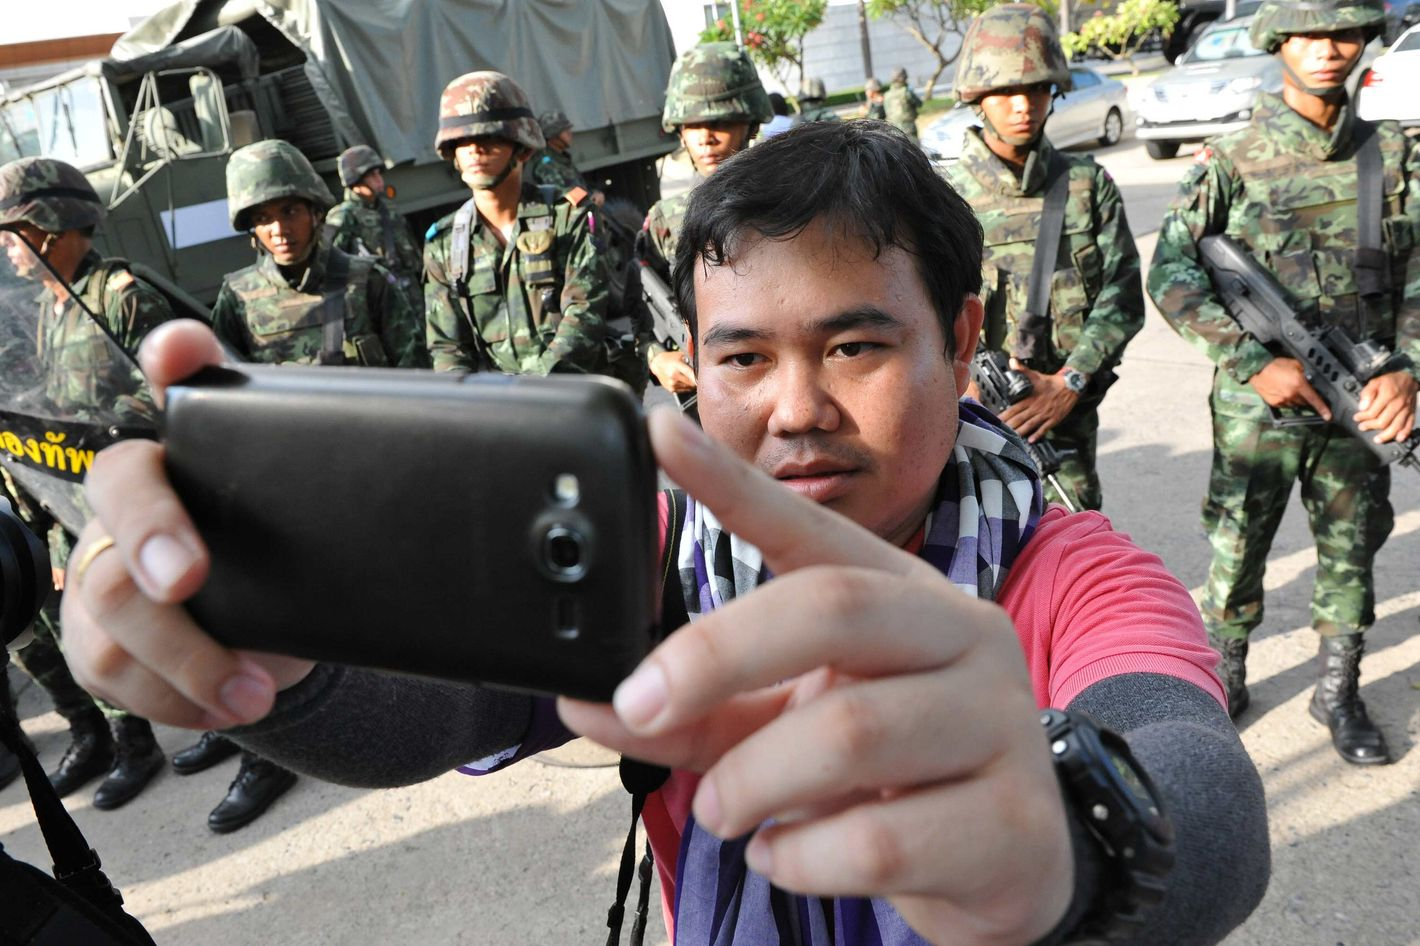 """A member of the press takes a """"selfie"""" with Thai army soldiers standing guard at the grounds of the venue for peace talks between pro- and anti-government groups on May 22, 2014 in Bangkok, Thailand. The army chief announced in an address to the nation that the armed forces were seizing power amid reports that leaders of the opposing groups attending the talks were being detained by the military. Thailand has seen months of political unrest and violence which has claimed at least 28 lives."""